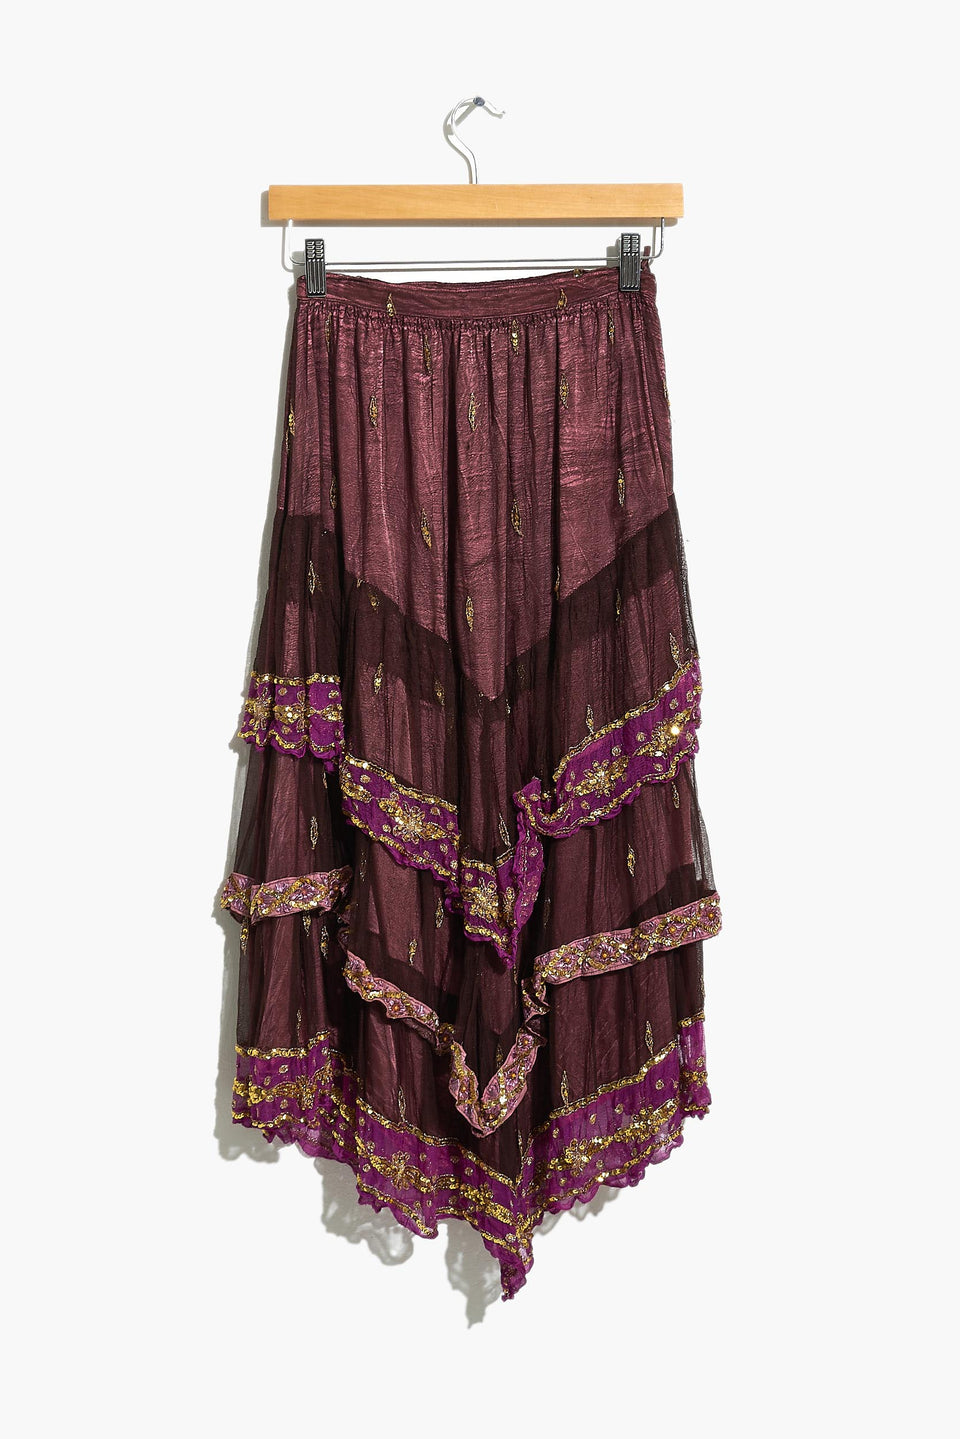 Indian wedding skirt